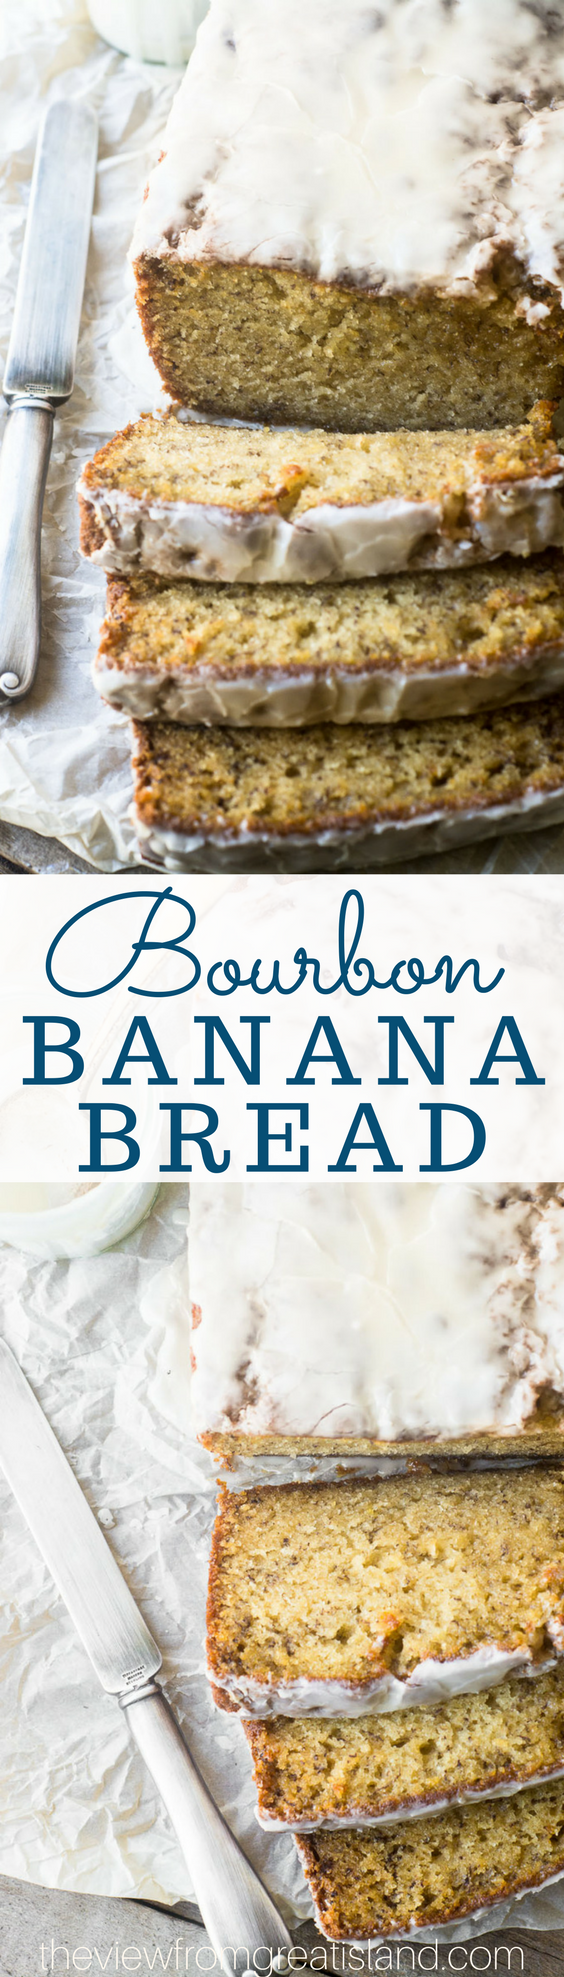 Plain old banana bread gets a makeover and, va-va-voom, Bourbon Banana Bread is in the house --- extra moist and definitely decadent, but still welcome at the breakfast table. #quickbread #bestbananabread #cake #poundcake #bananacake #brunch #breakfast #bourbon